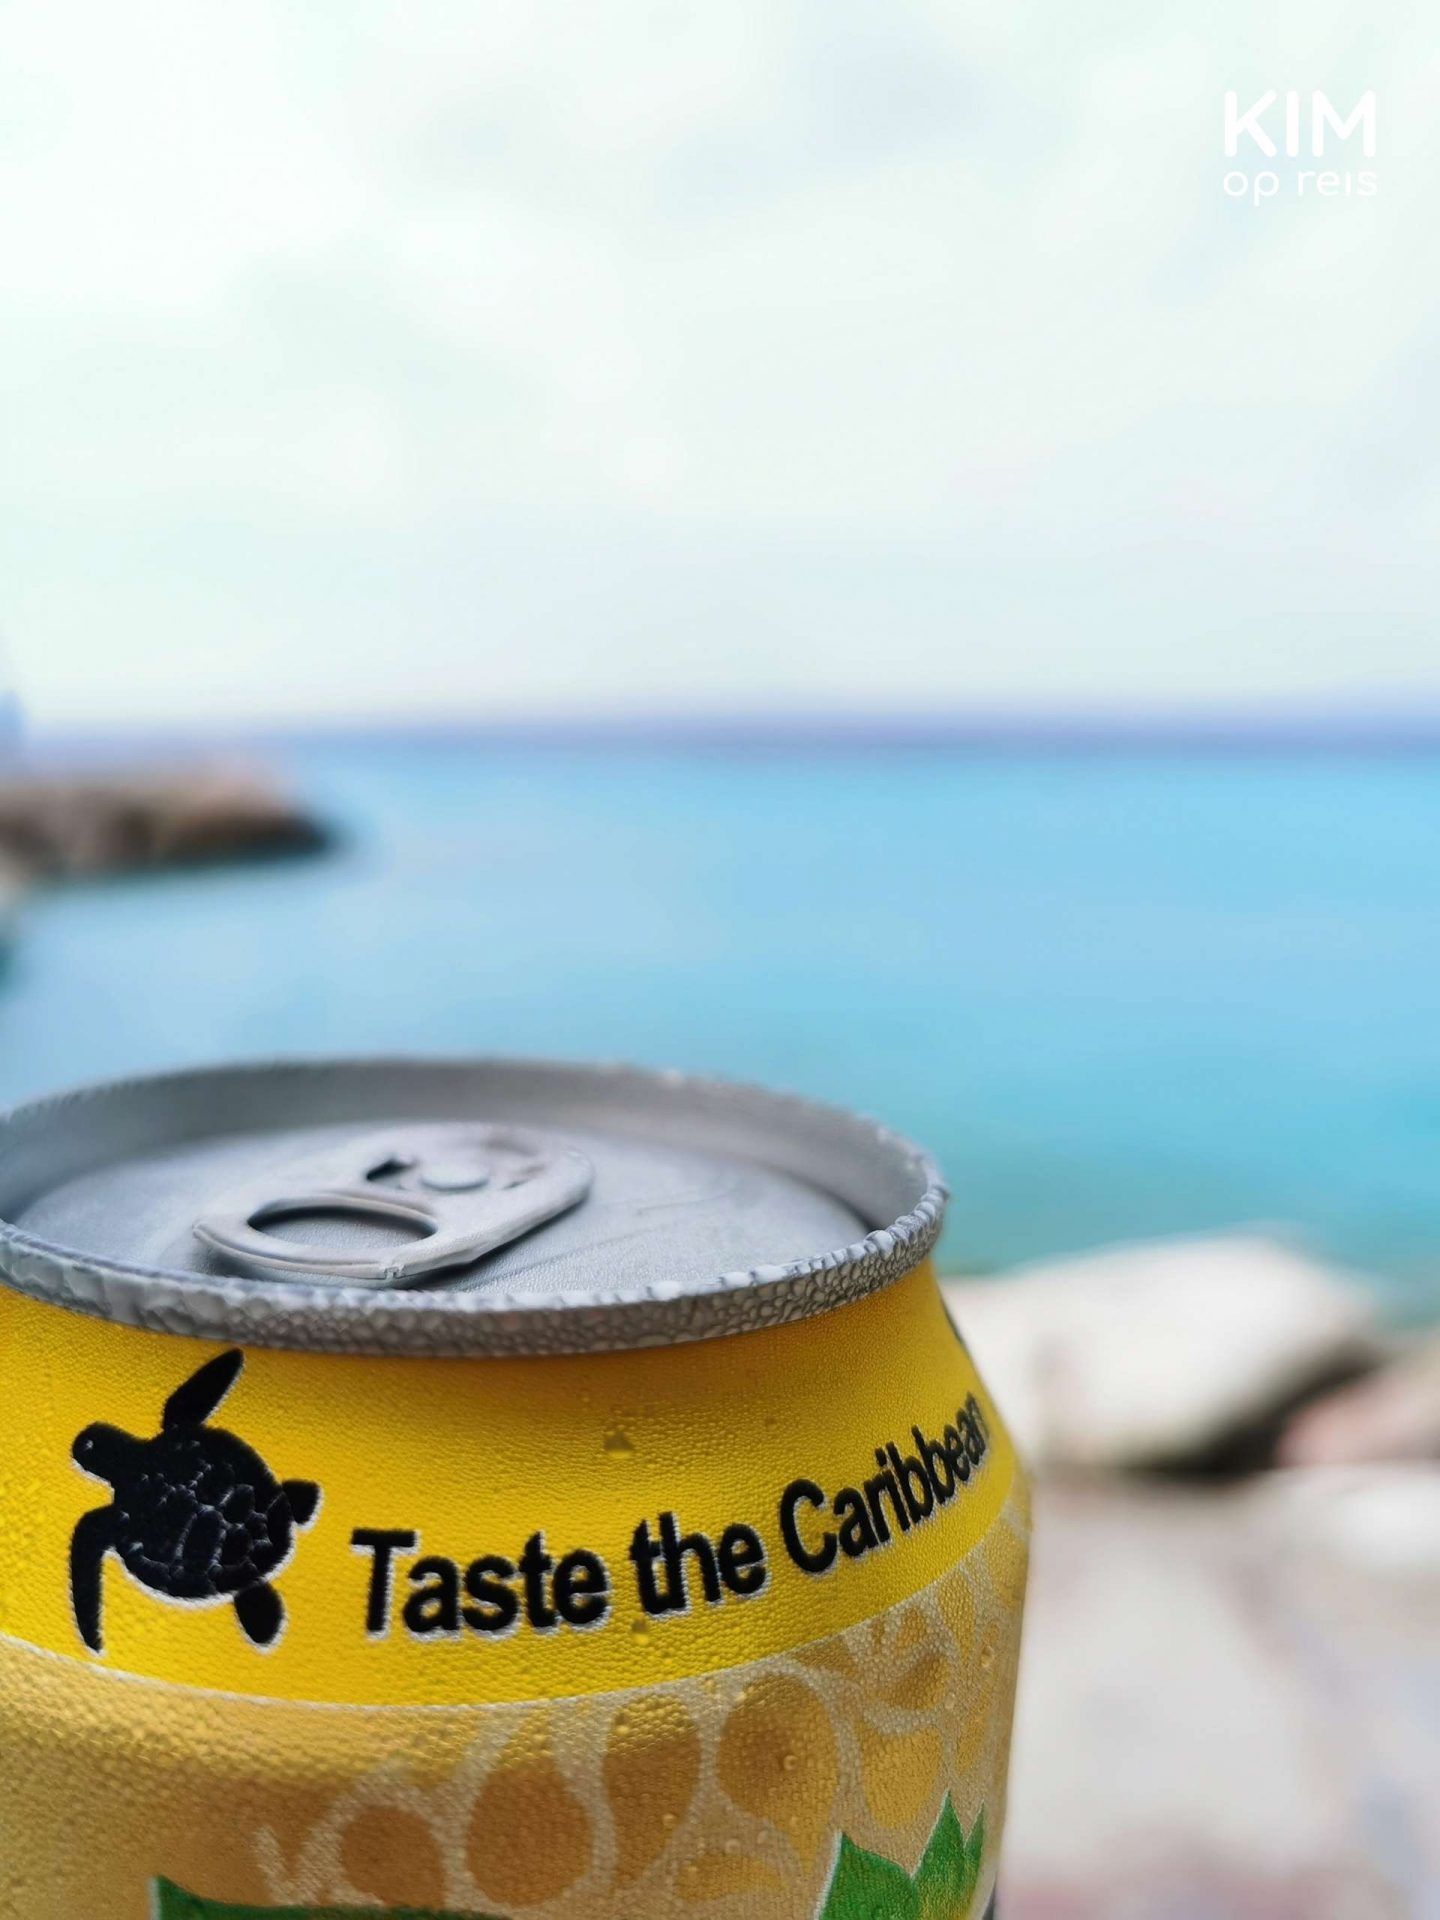 Restaurants Curacao Taste the Caribbean: top of a can of iced tea that reads 'Taste the Caribbean', a background of blue sea